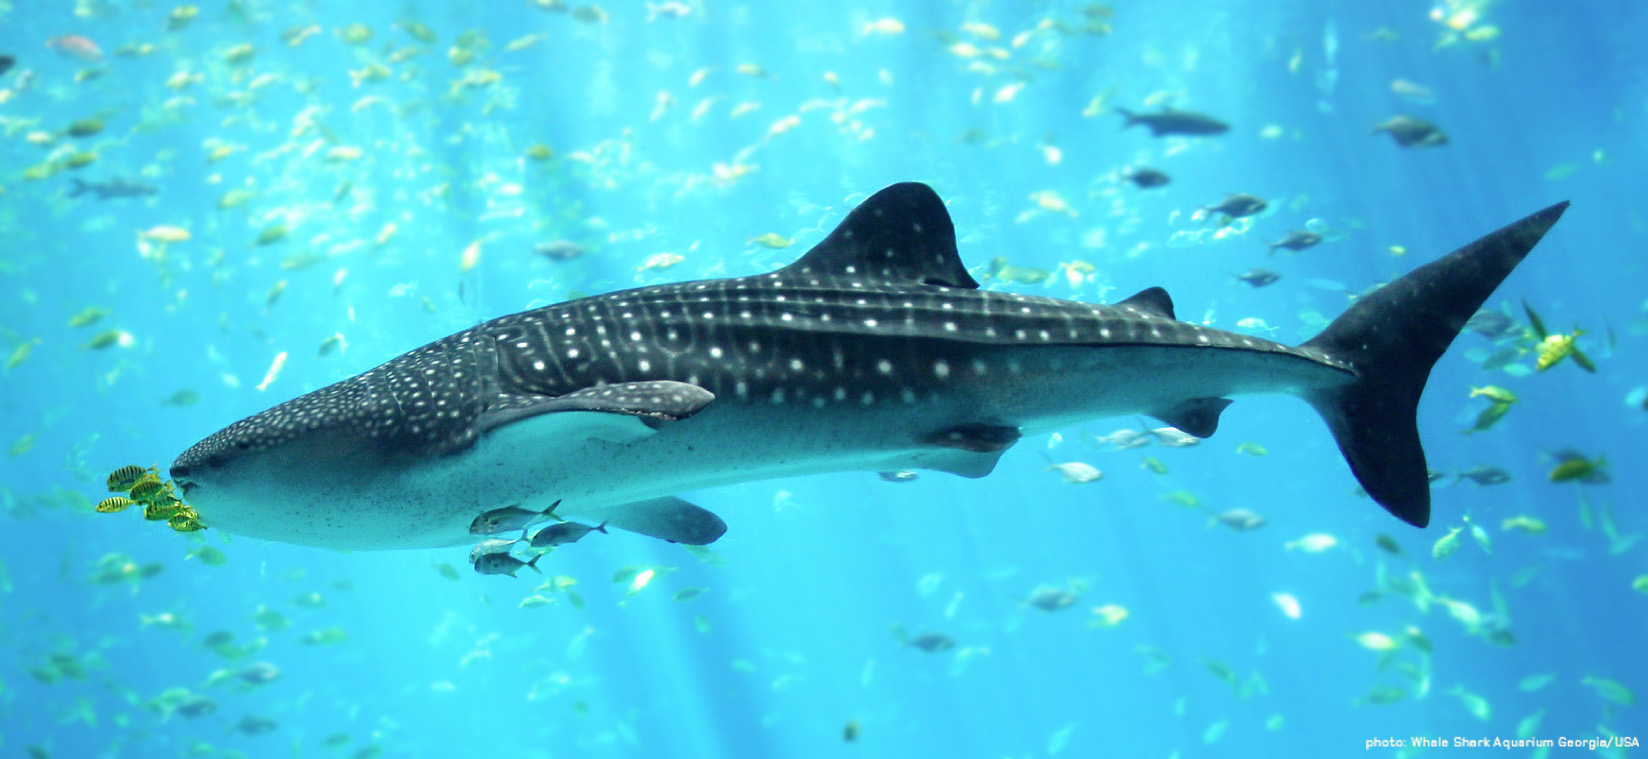 Whale-Shark-Aquarium-Georgia-USA